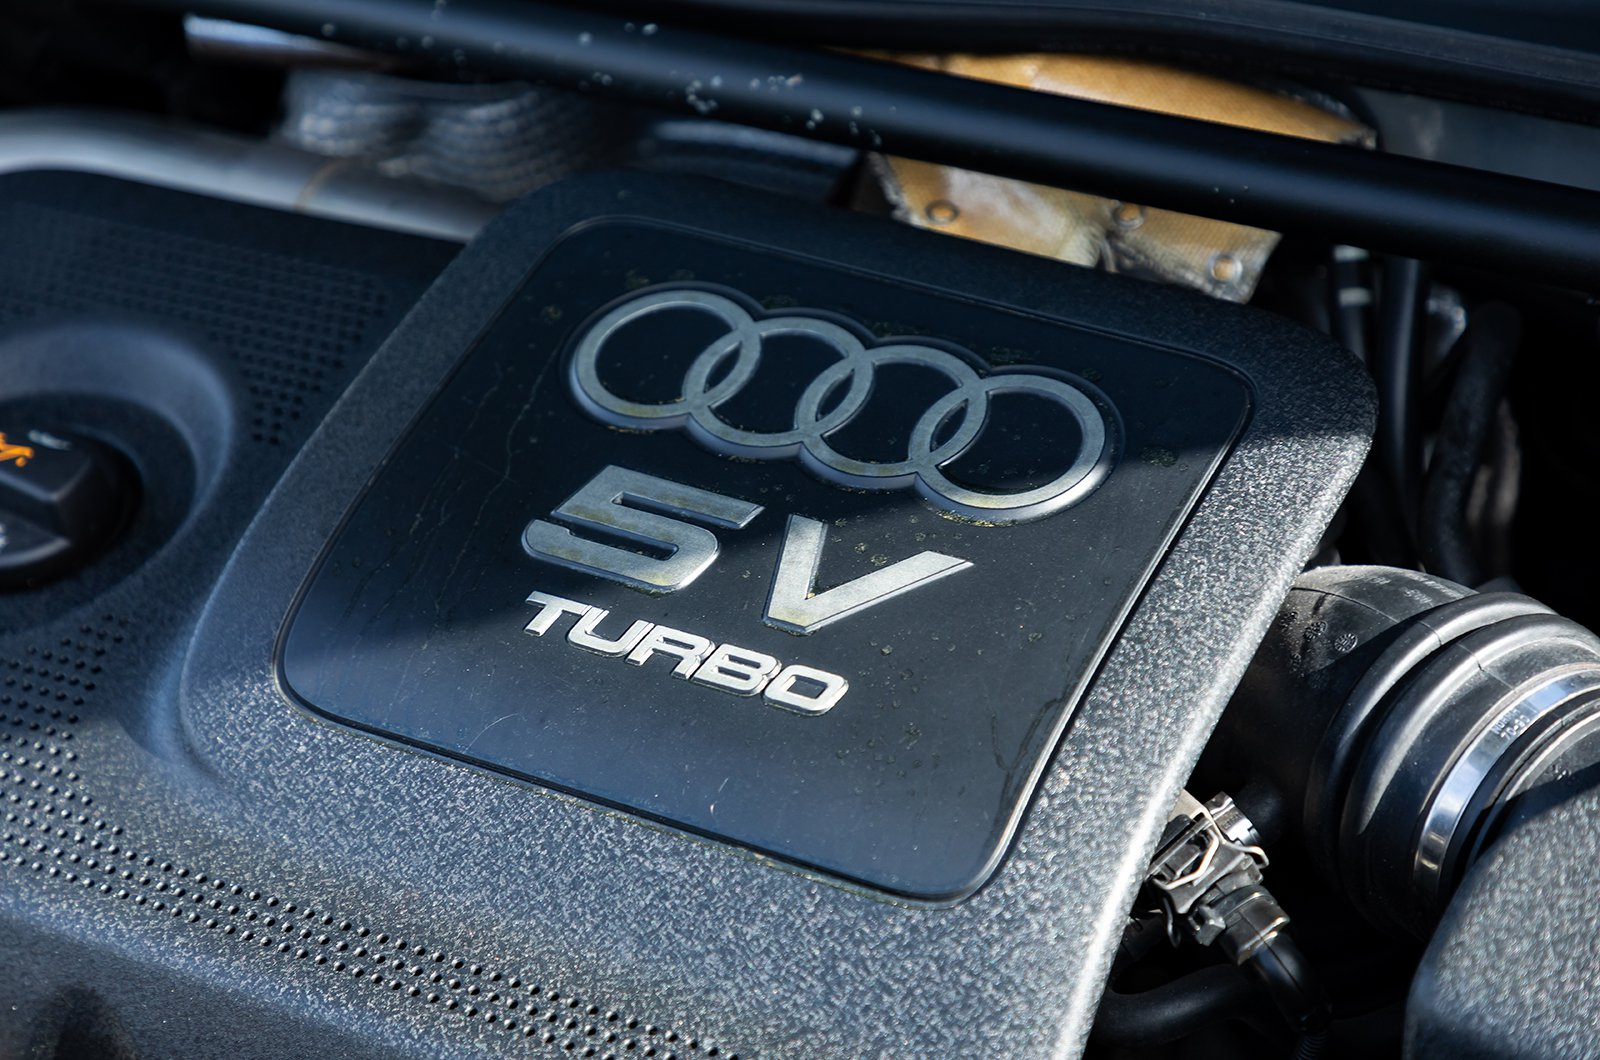 Audi TT turbo engine